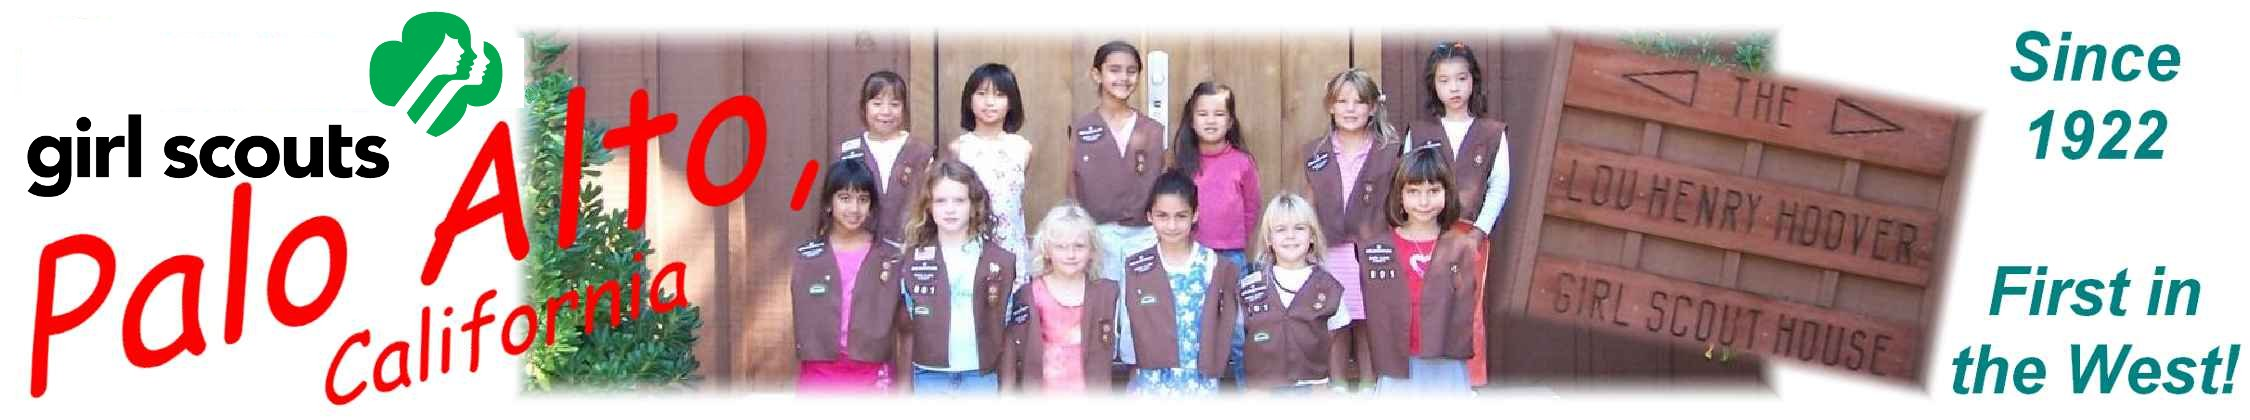 Girl Scouts of Palo Alto Home Page Banner